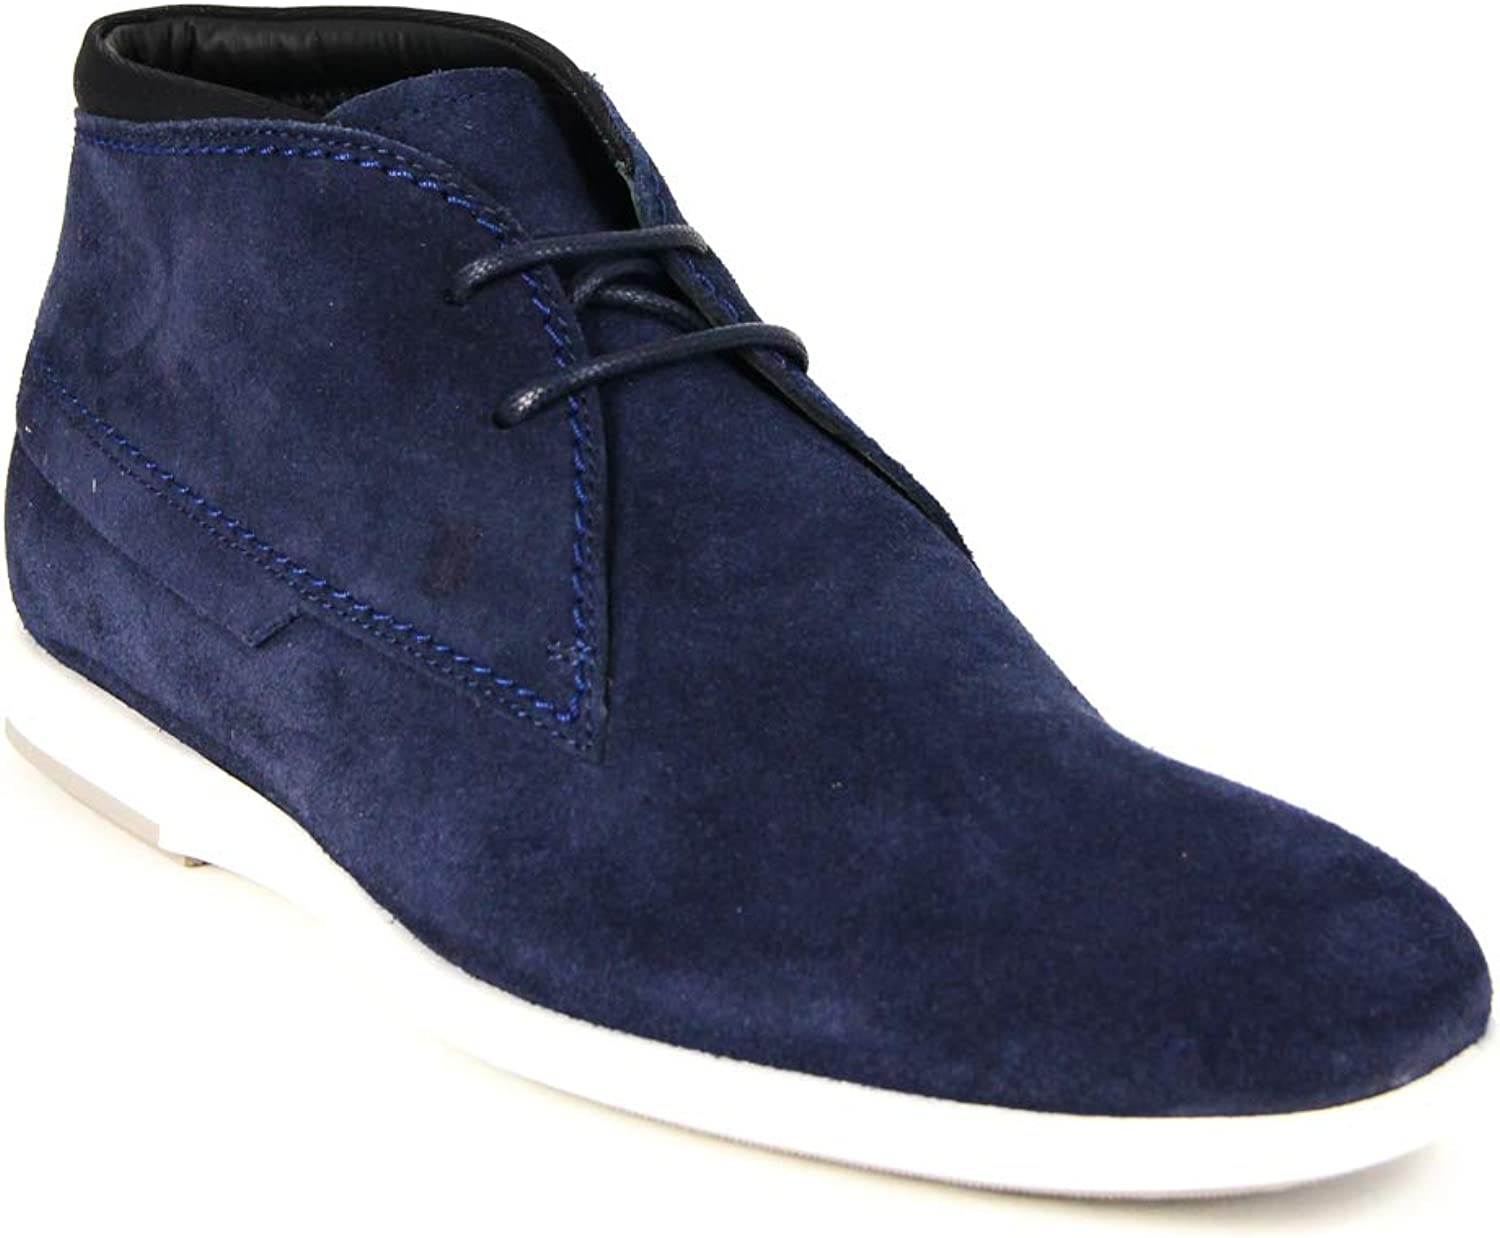 Tod's Men's Polacco Suede Leather Lace Up Oxfords Shoes, ALASSIA